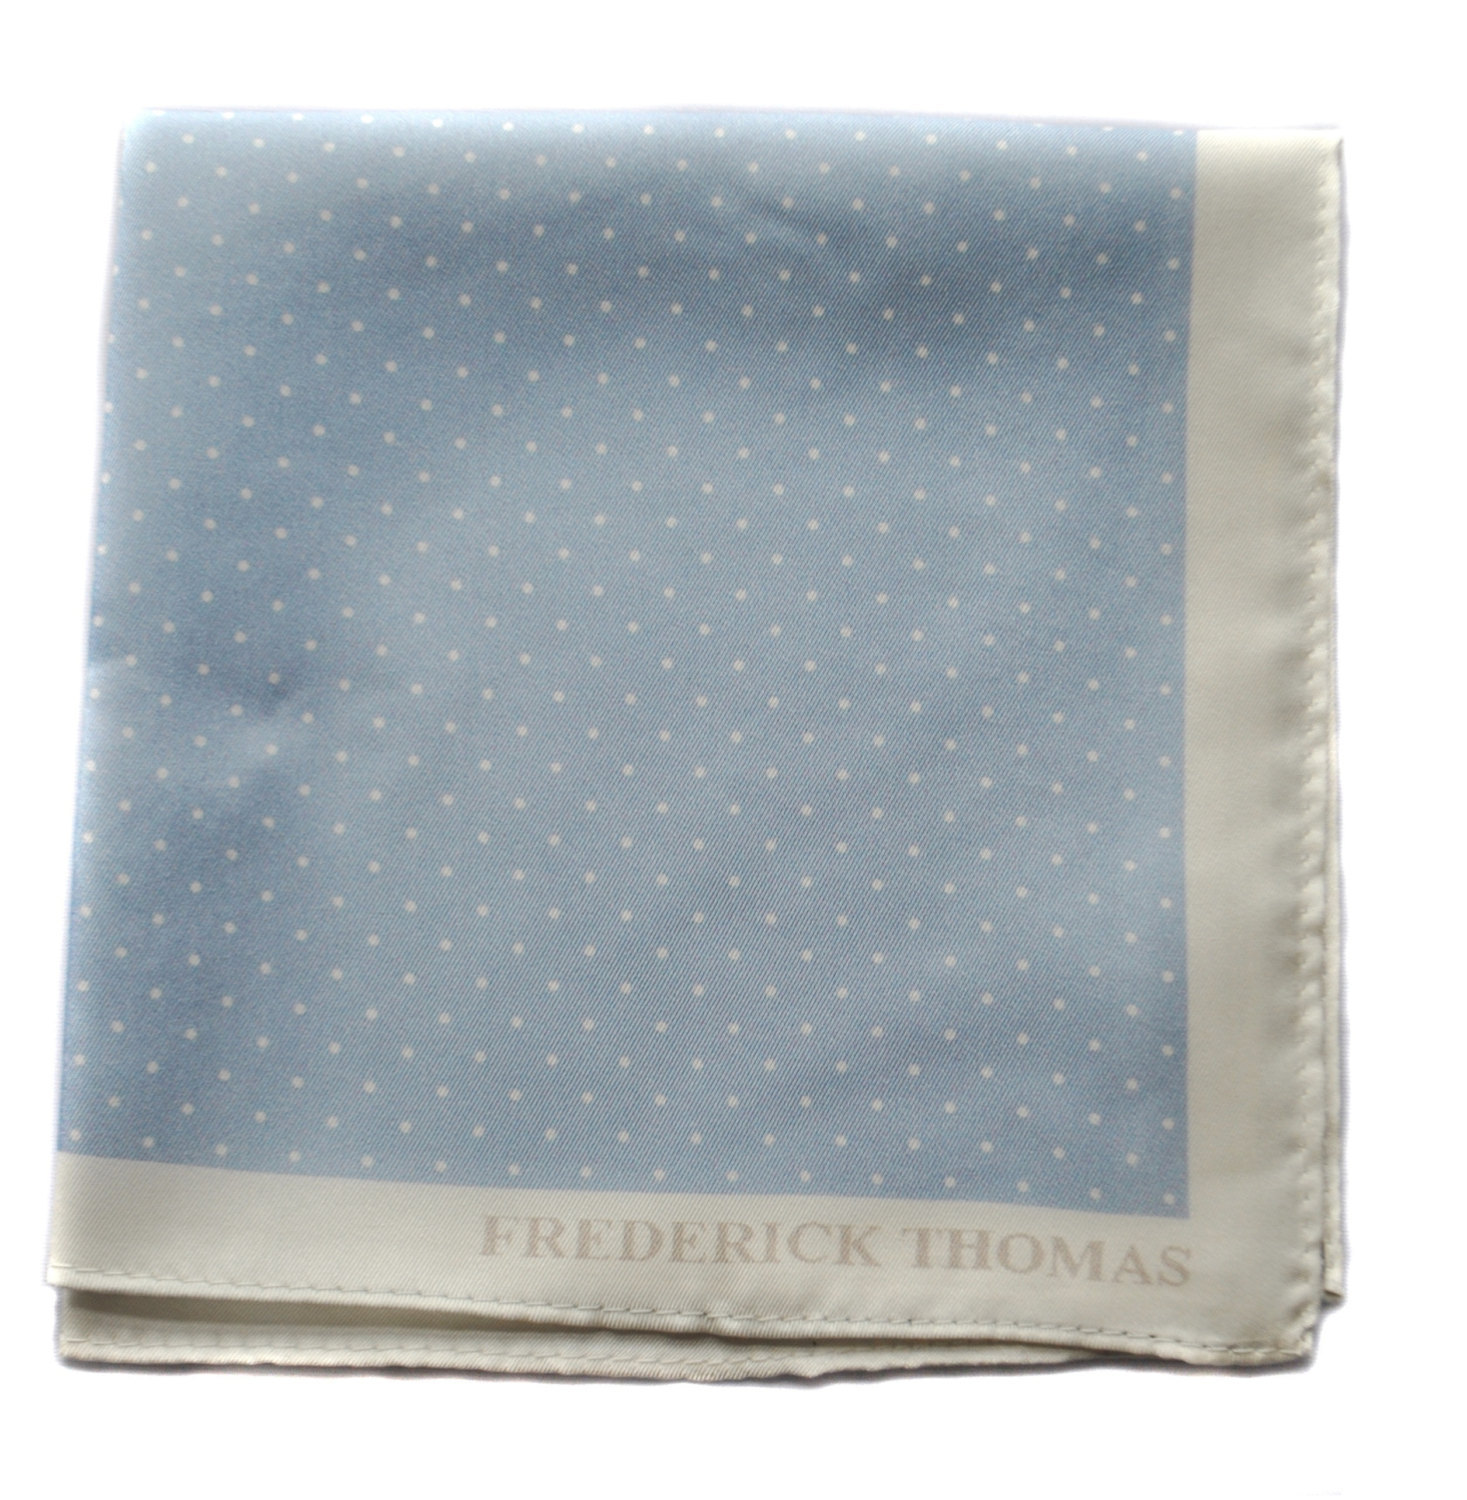 Frederick Thomas light blue and white pin spotted pocket square with white edgin